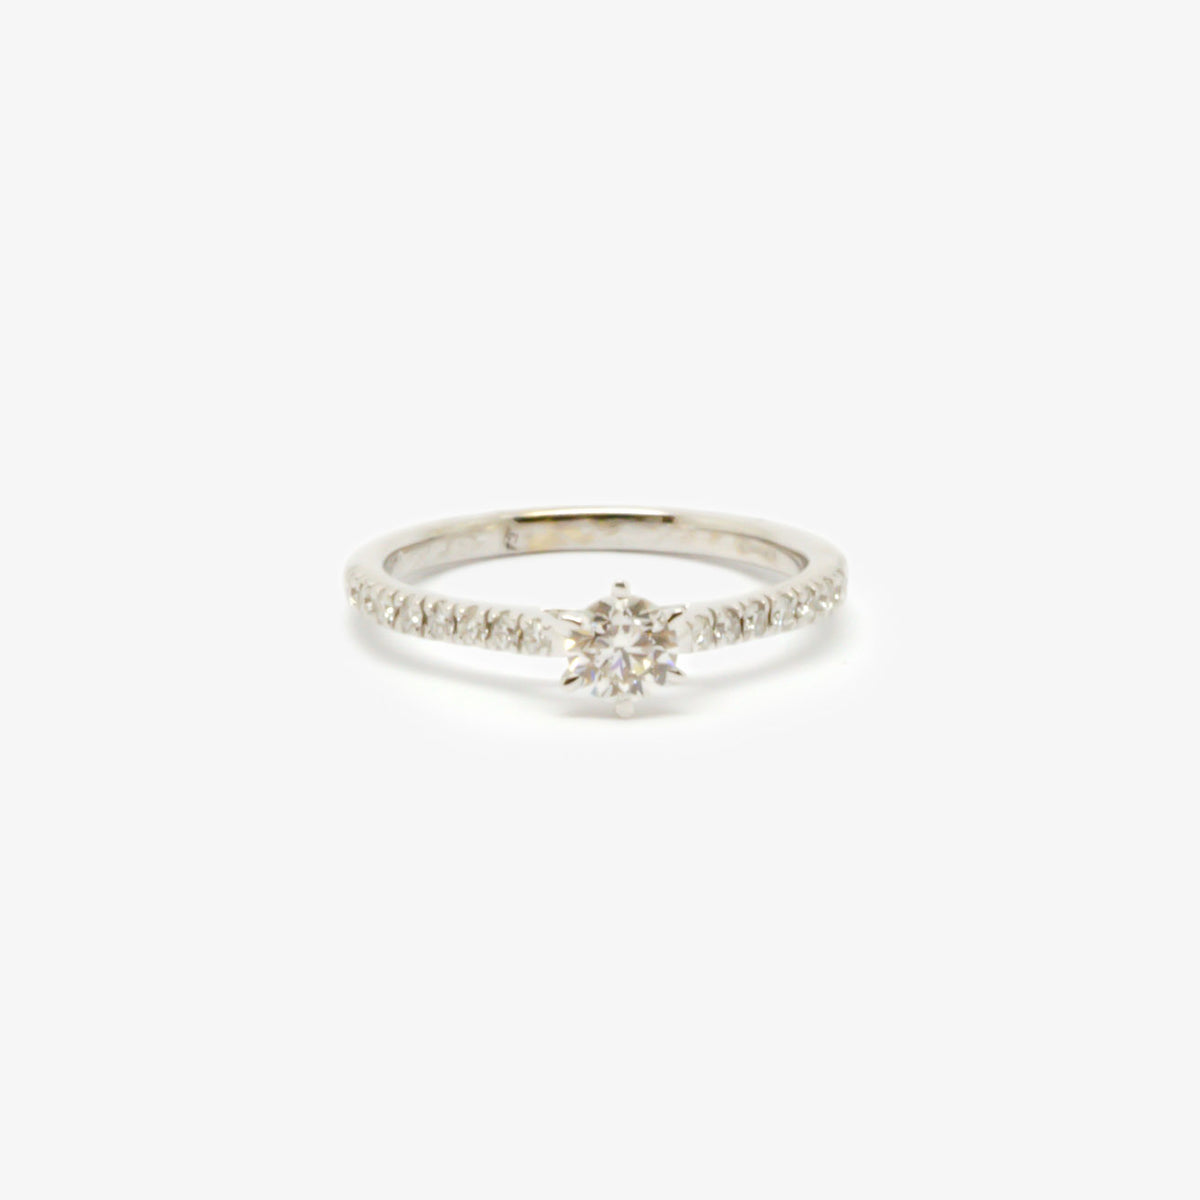 Six Claw Diamond Solitaire Ring With Diamond Shoulders